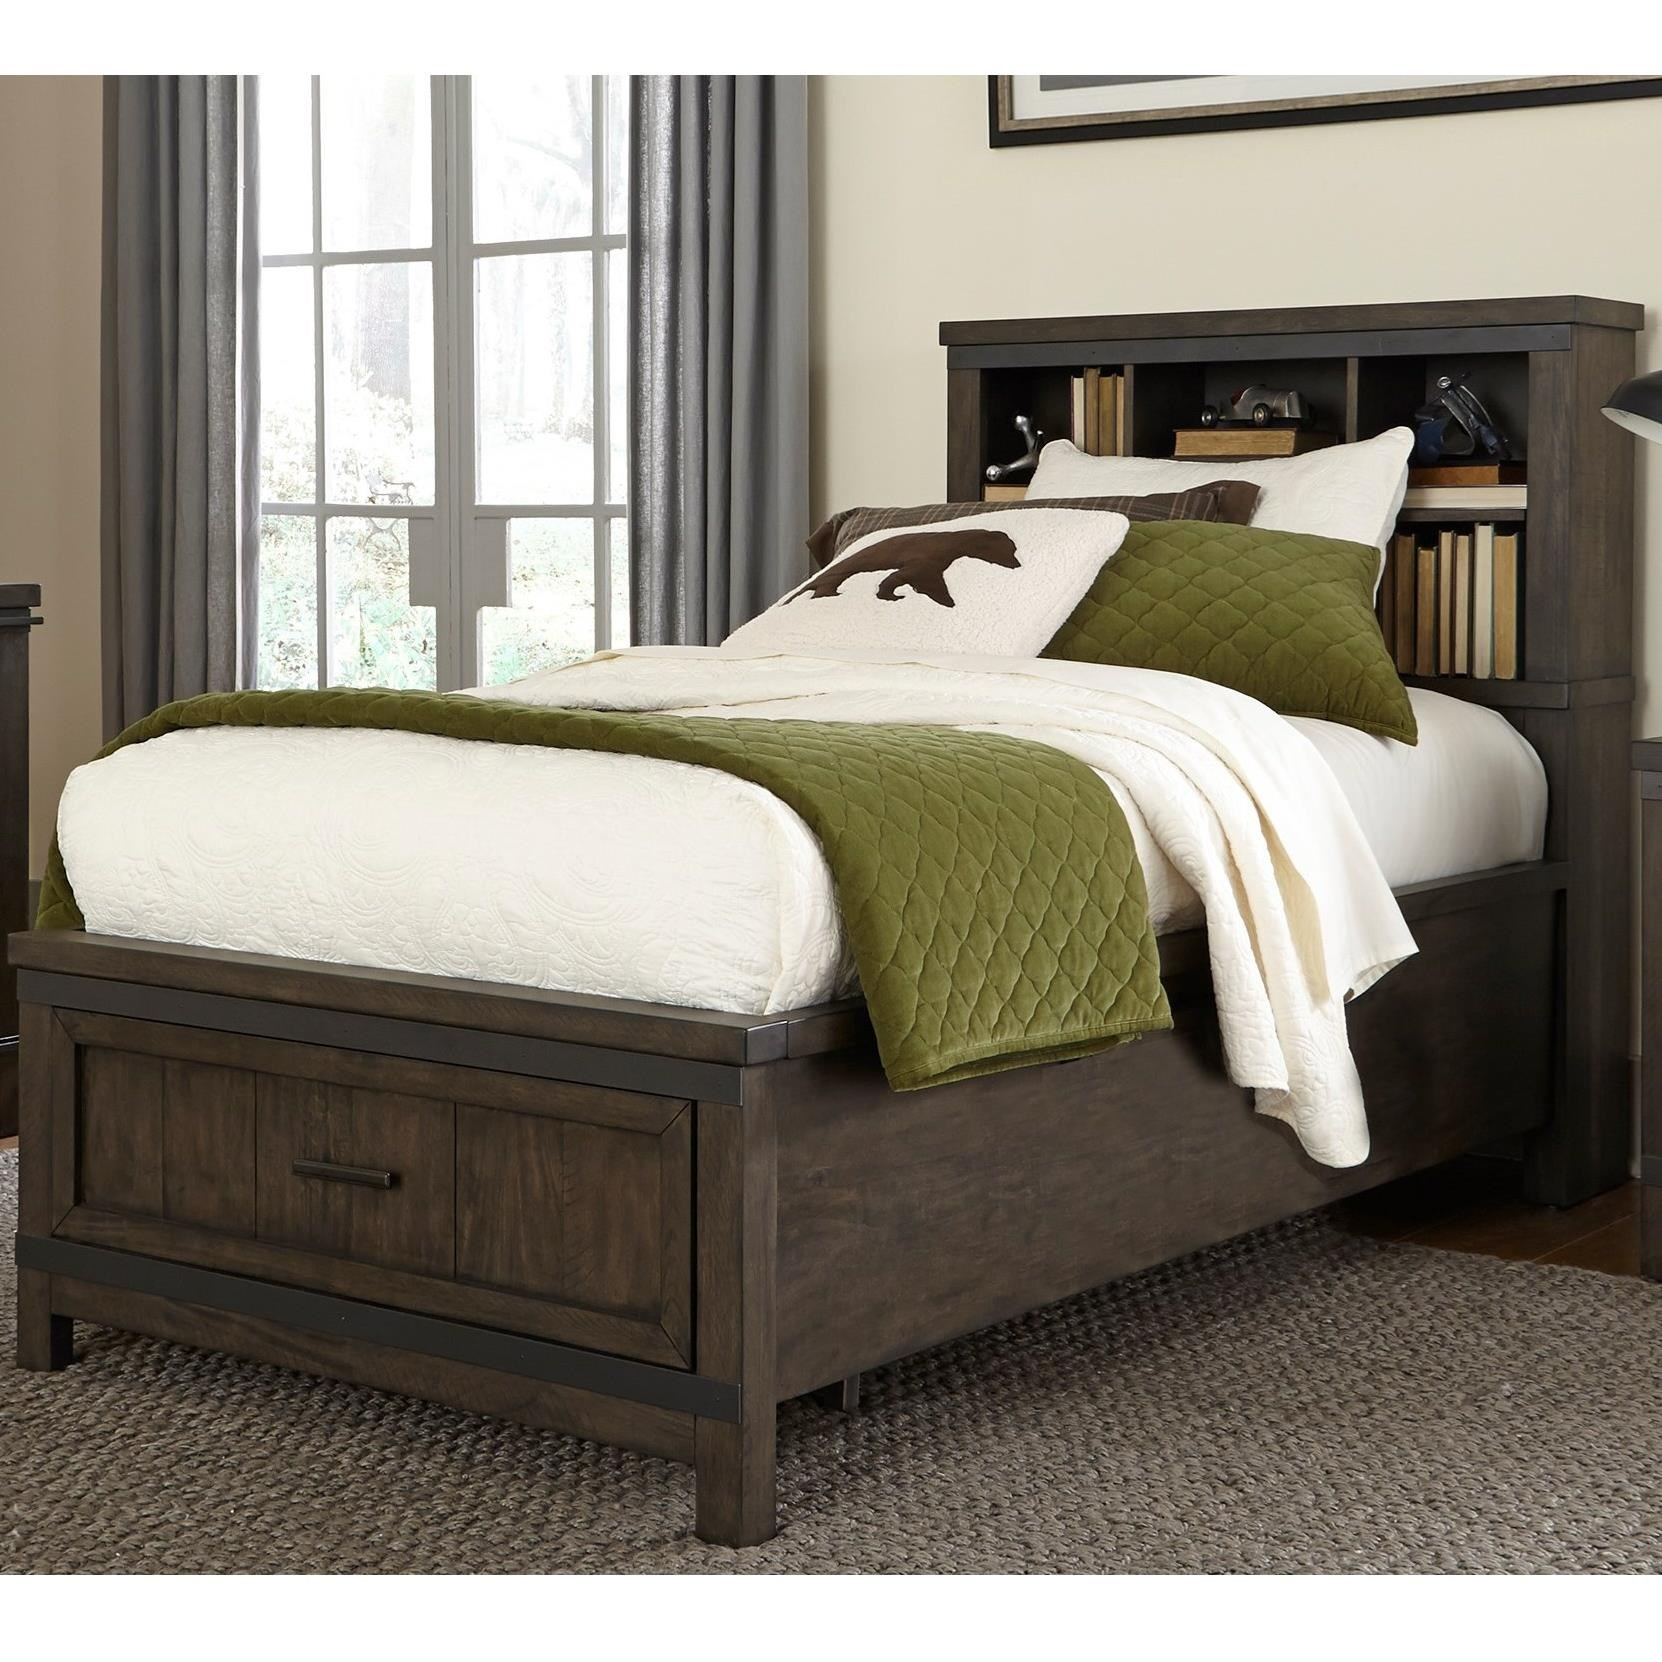 Bookcase Bed Thornwood Hills Rustic Full Bookcase Bed With Footboard Storage By Vendor 5349 At Becker Furniture World